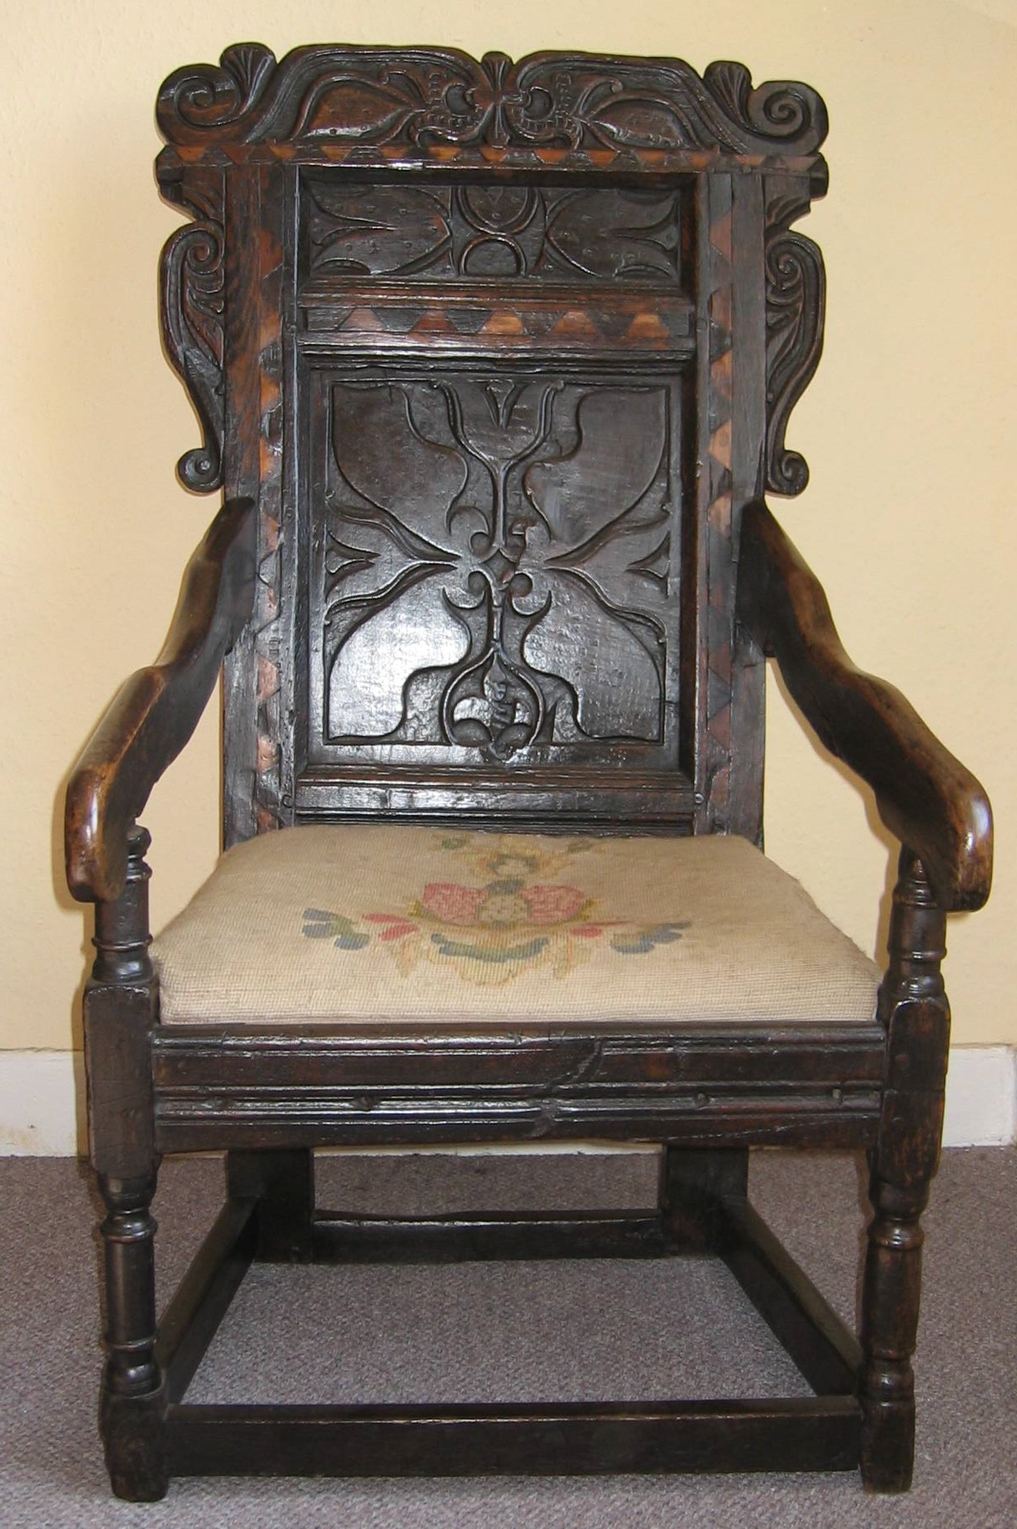 Reupholstering of antique chairs reupholstering chairs for How to reupholster a chair